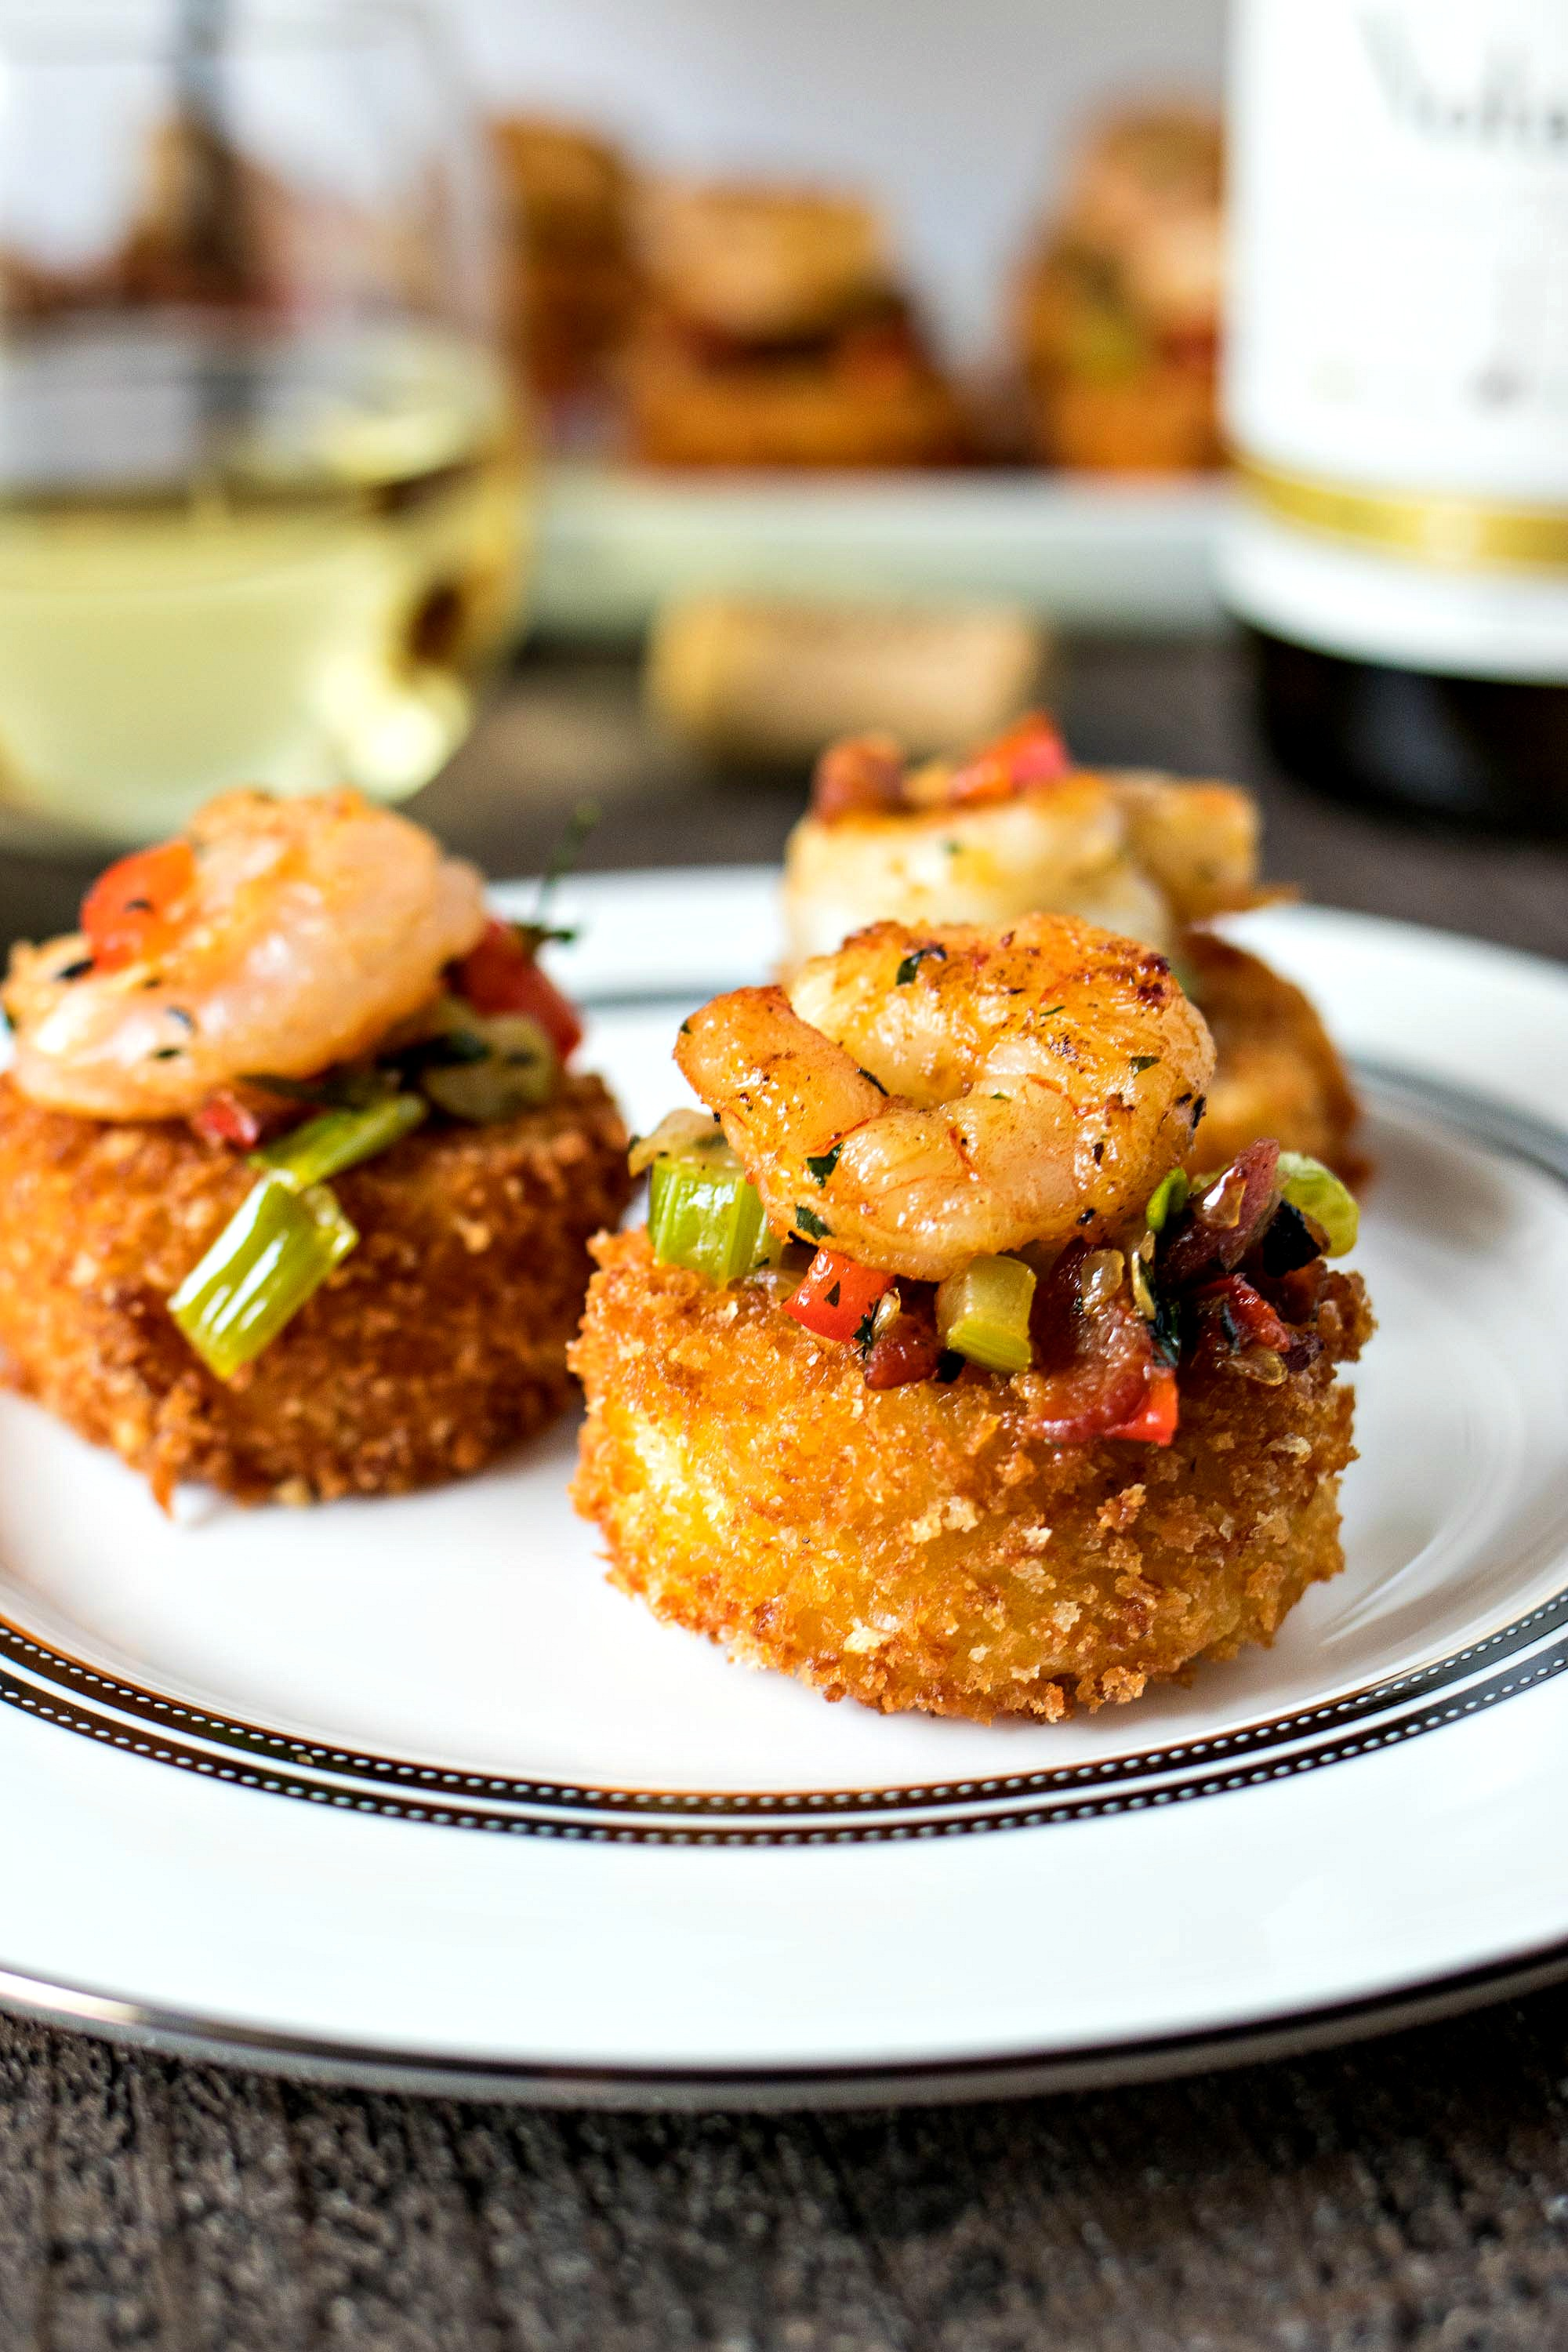 Shrimp & Grit Cake Bites - Ultra creamy grit patties are fried and served with a buttery sauteed shrimp and crispy bacon to create an appetizer that your guests will go crazy for. Pairs perfectly with the flavors of Chardonnay wine!